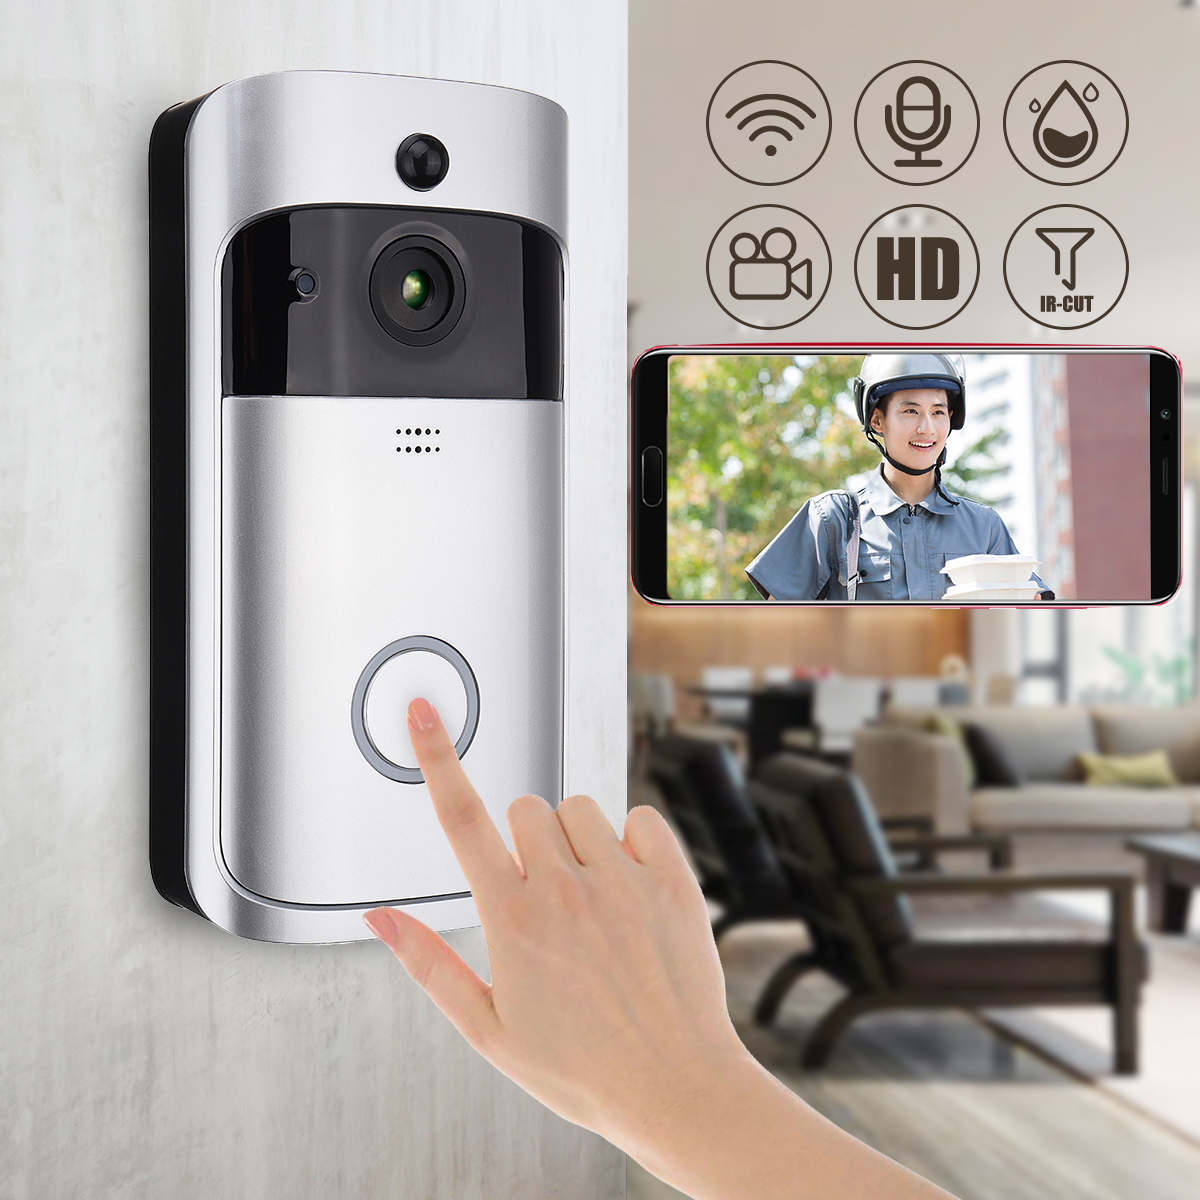 Wireless WiFi Smartphone Remote Video Camera Doorbell Rainproof Home Security